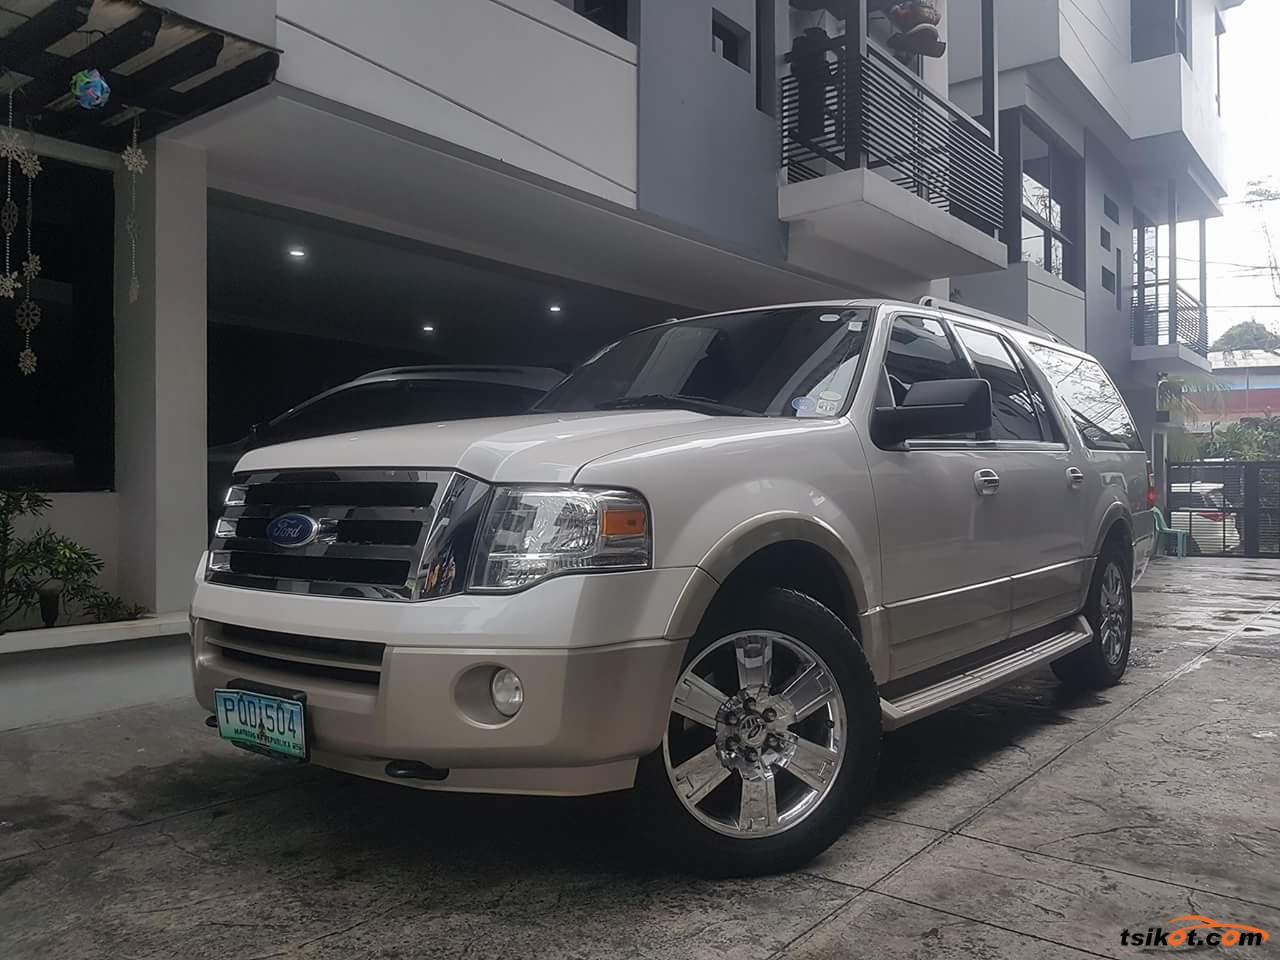 ford expedition 2011 car for sale metro manila philippines. Black Bedroom Furniture Sets. Home Design Ideas